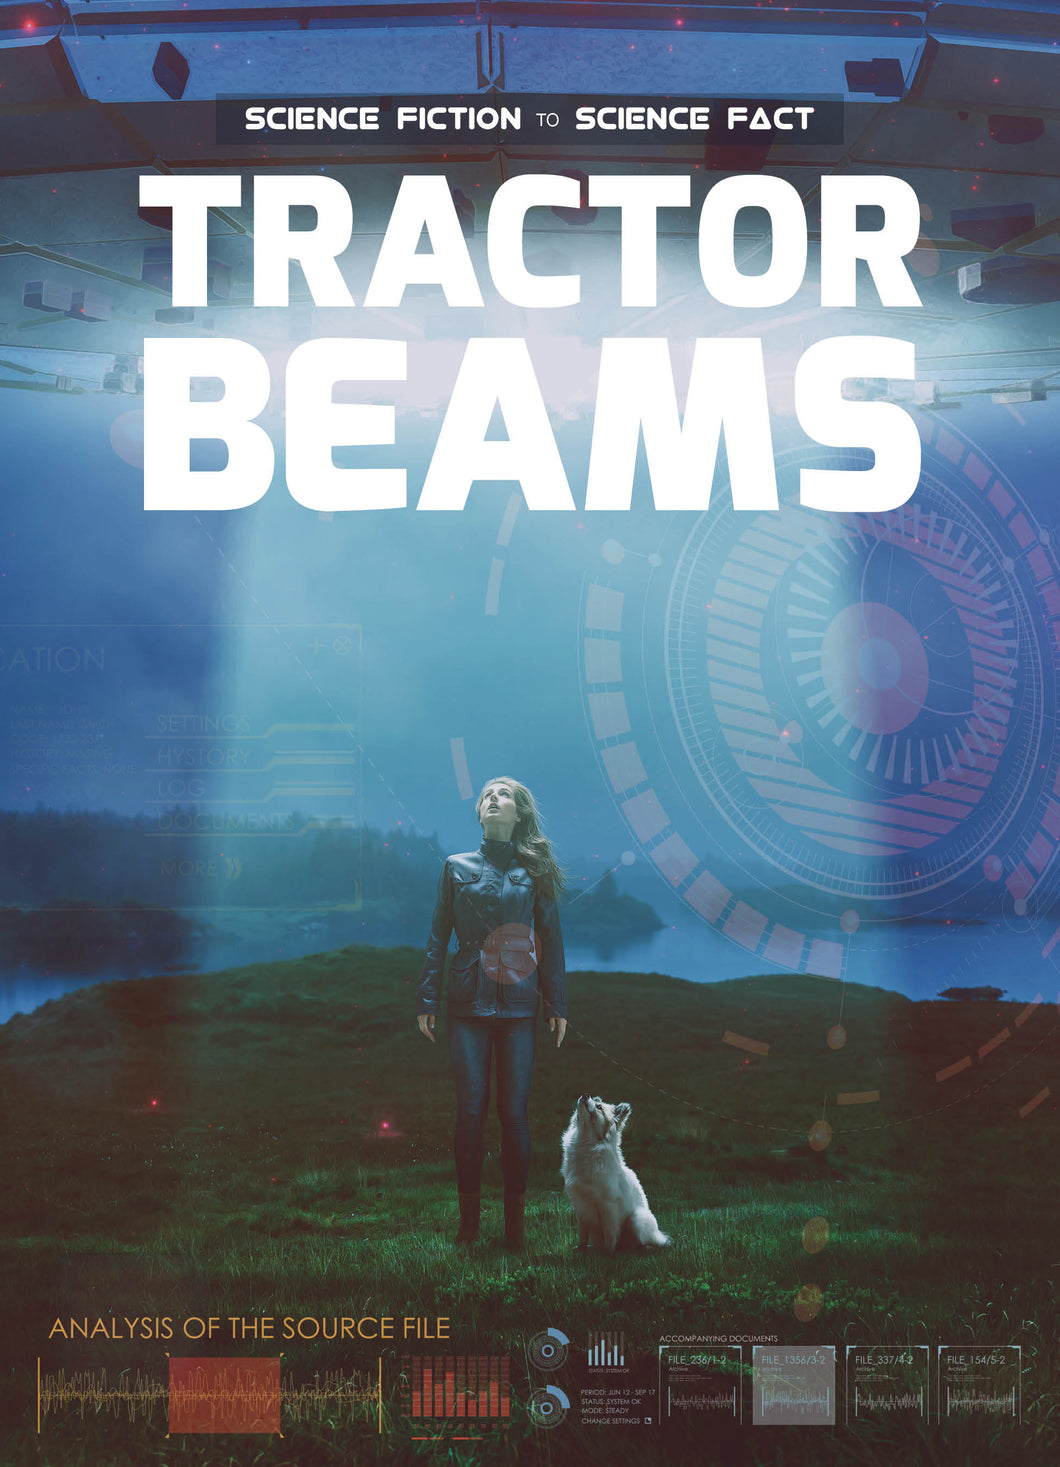 Tractor Beams Childrens book 9781912171101